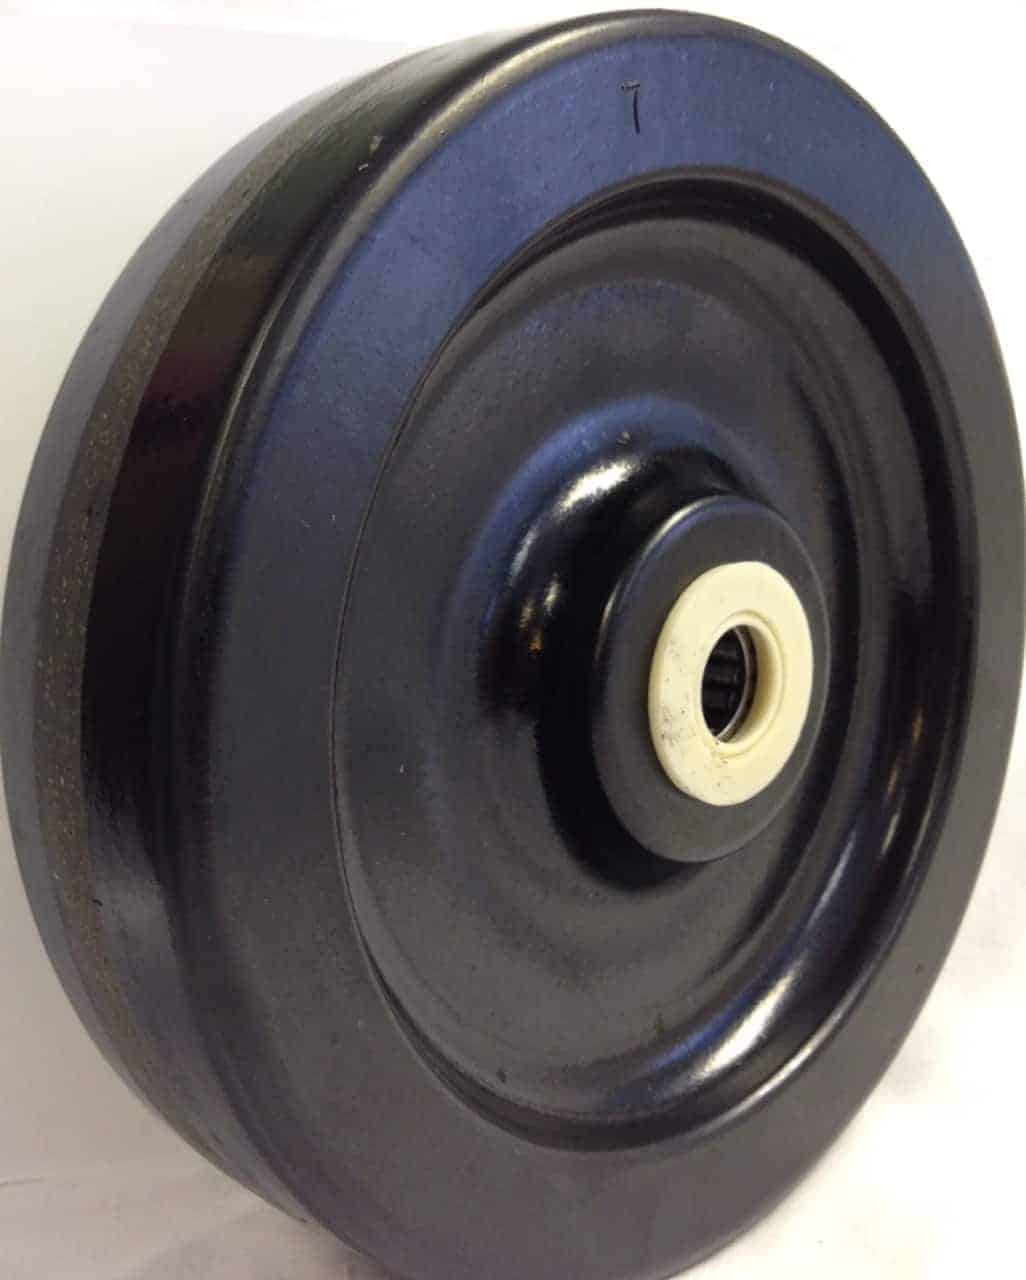 10″ Phenolic Wheel With 2-3/4″ Hub 1″ Roller Bearing 2500 Lbs Capacity